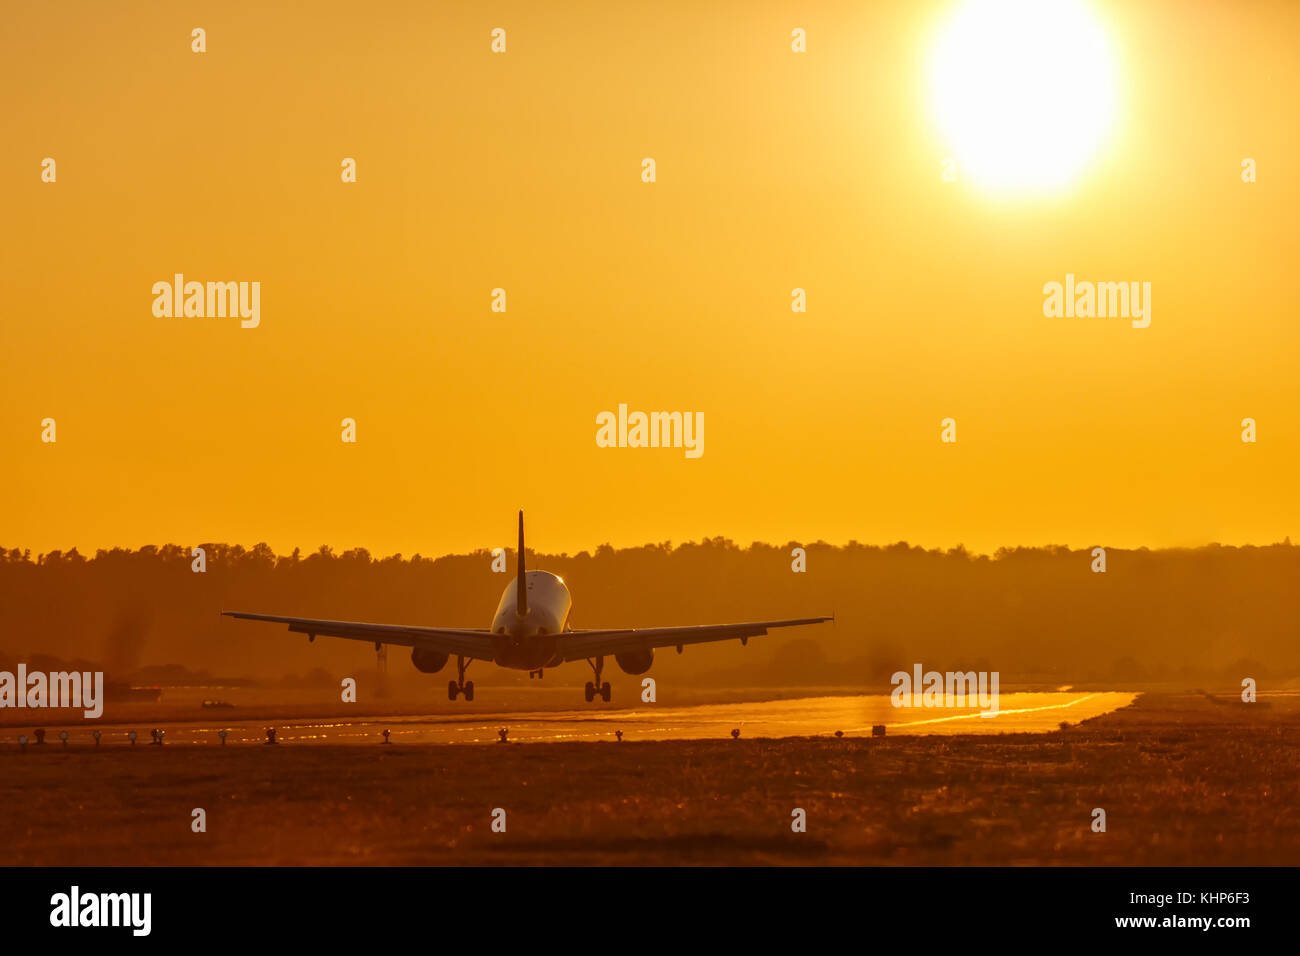 Vacation holidays travel airplane landing airport sun sunset plane aircraft travelling - Stock Image